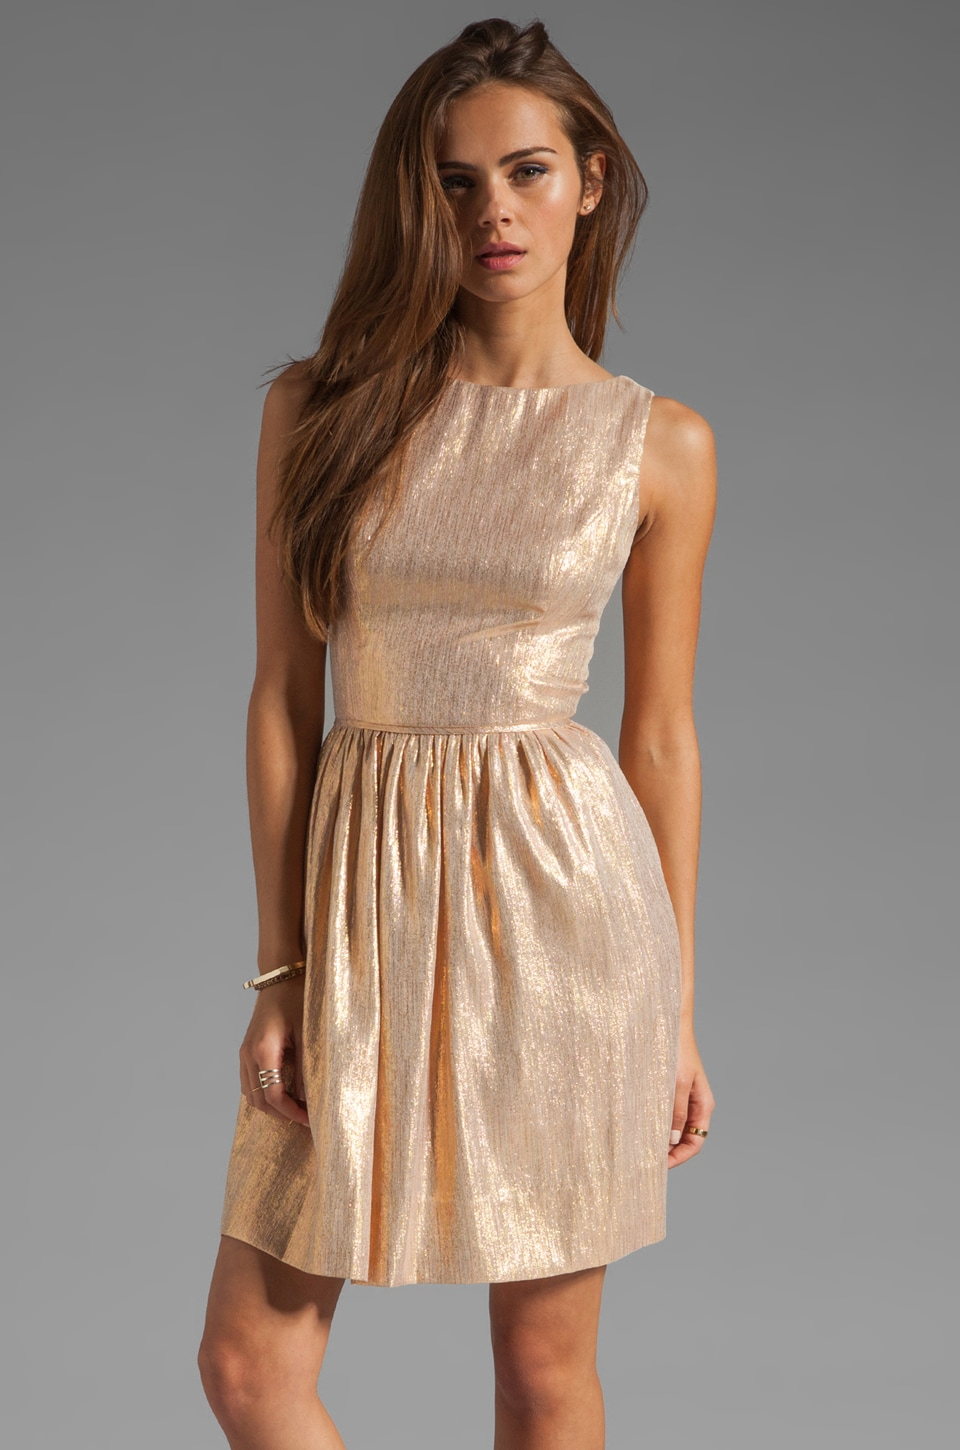 Shoshanna Tillie Dress in Rose Gold